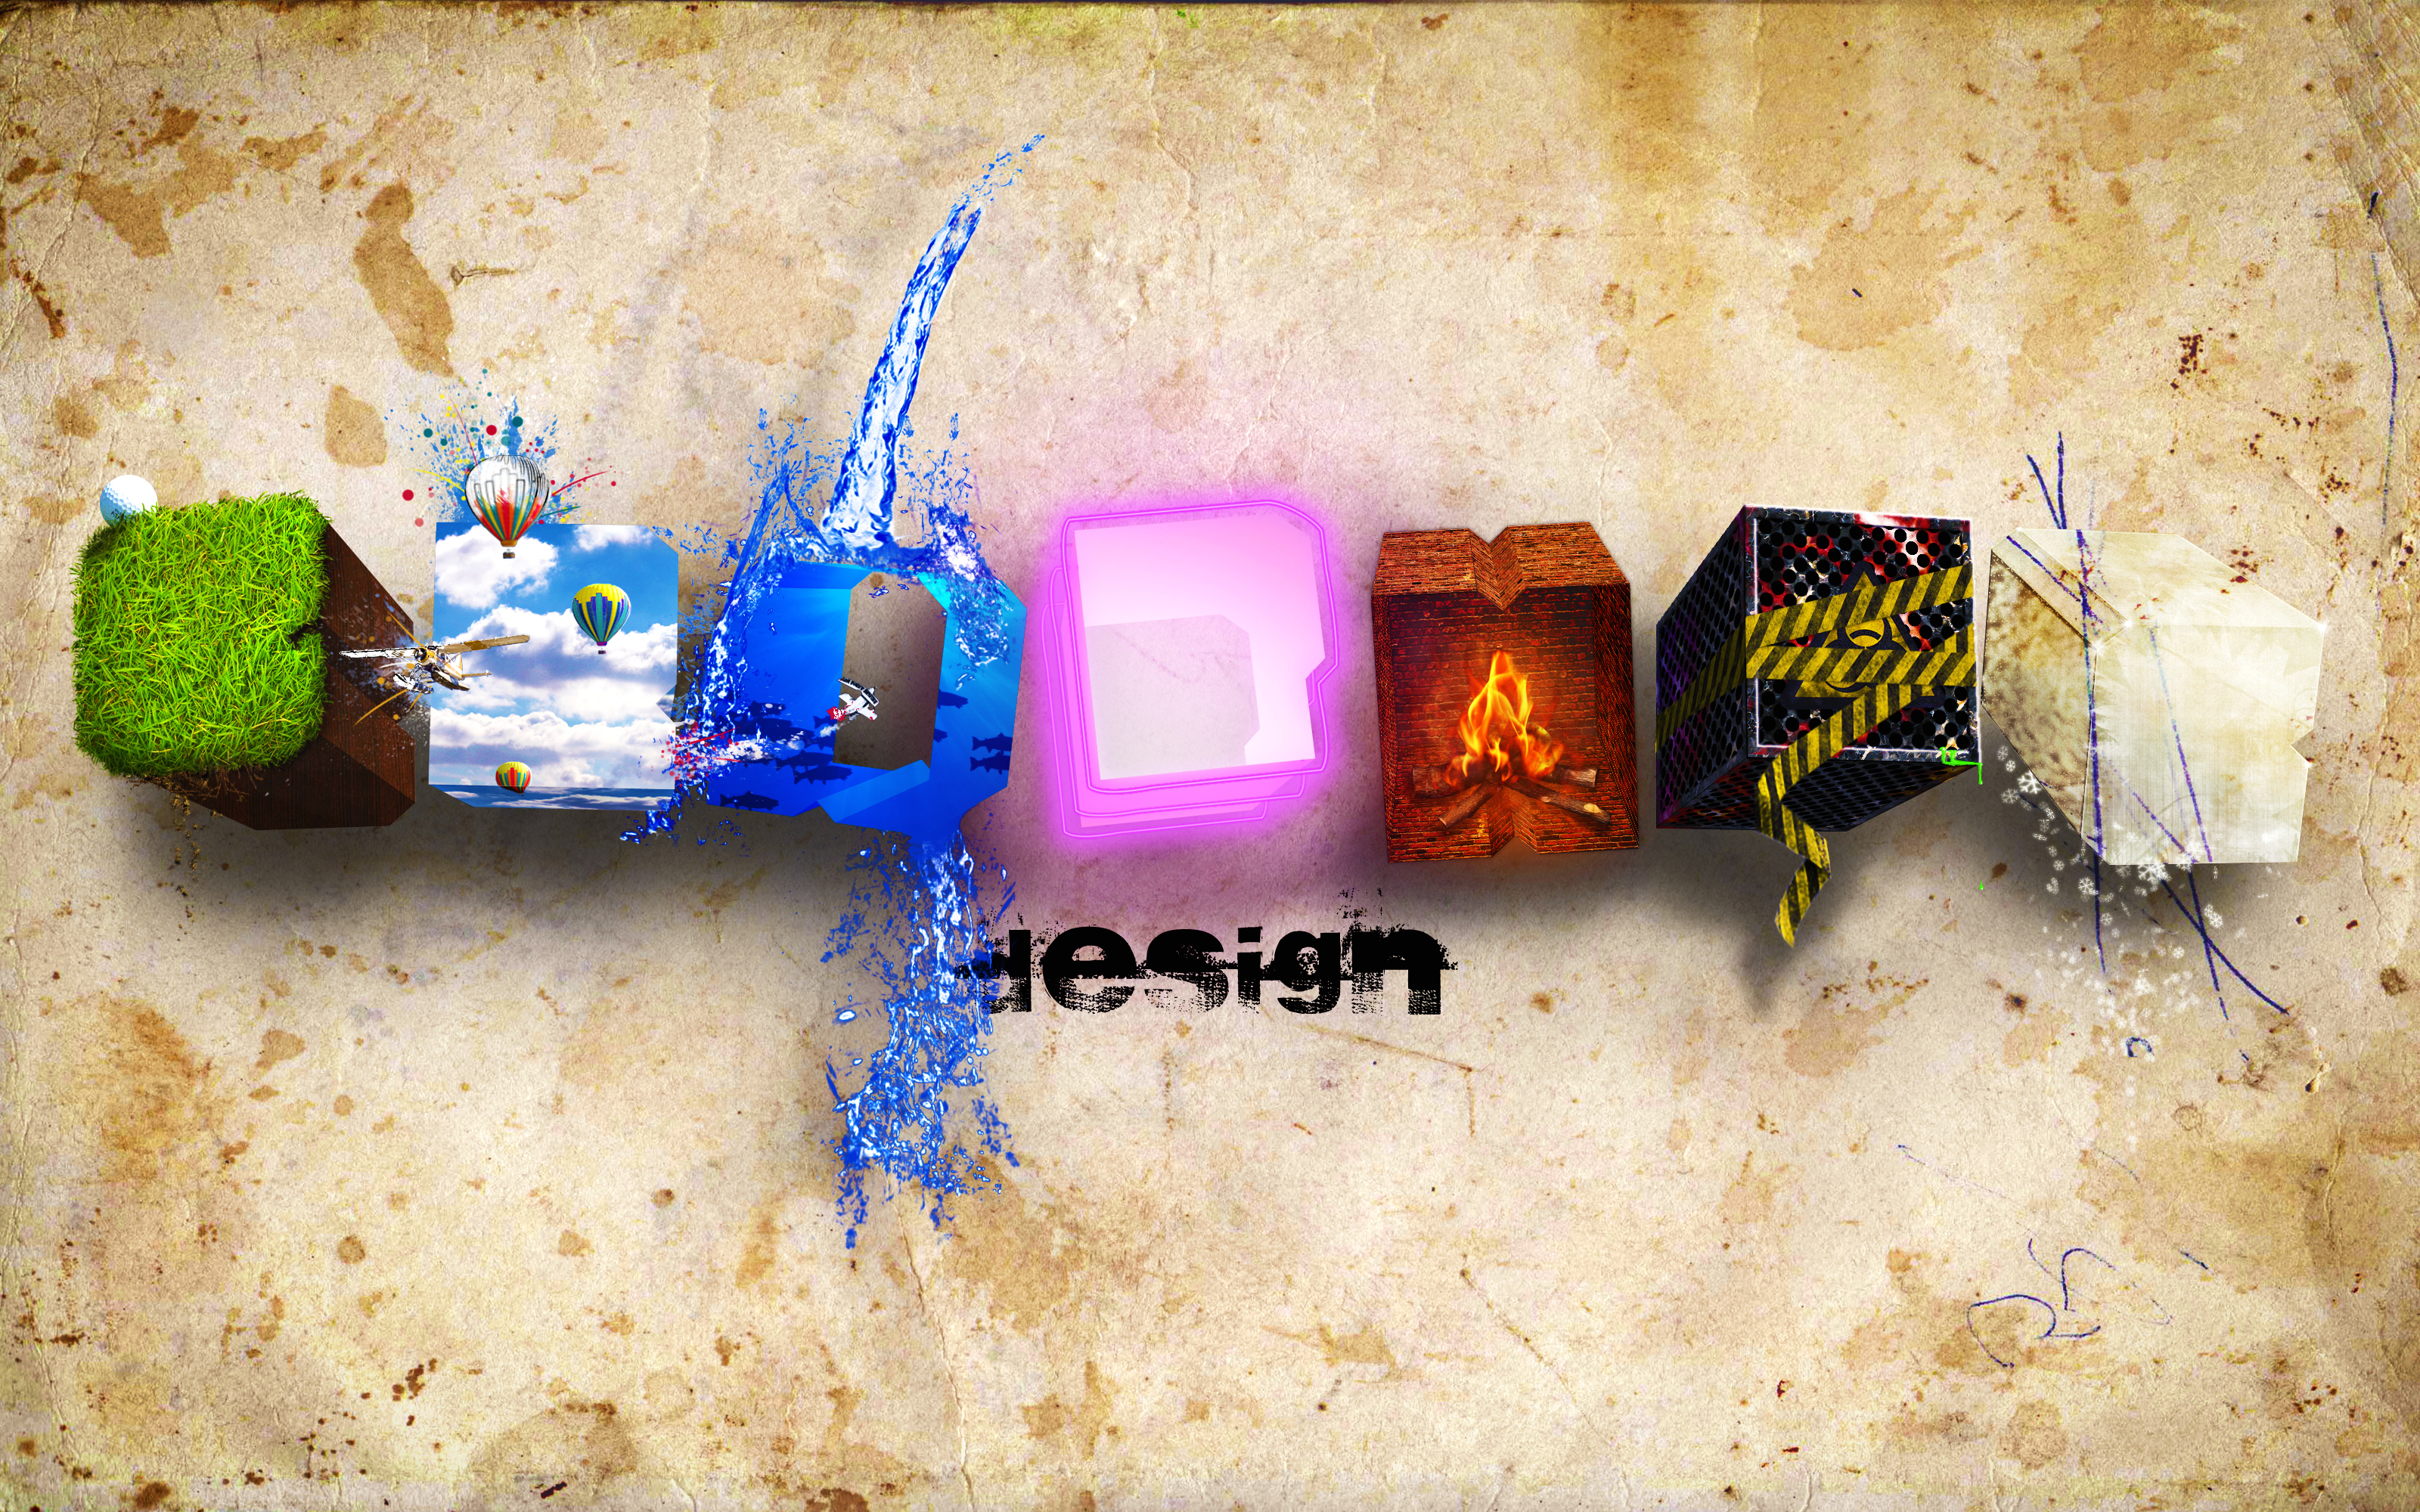 Graphic Design Art Wallpapers PC 3200x2000